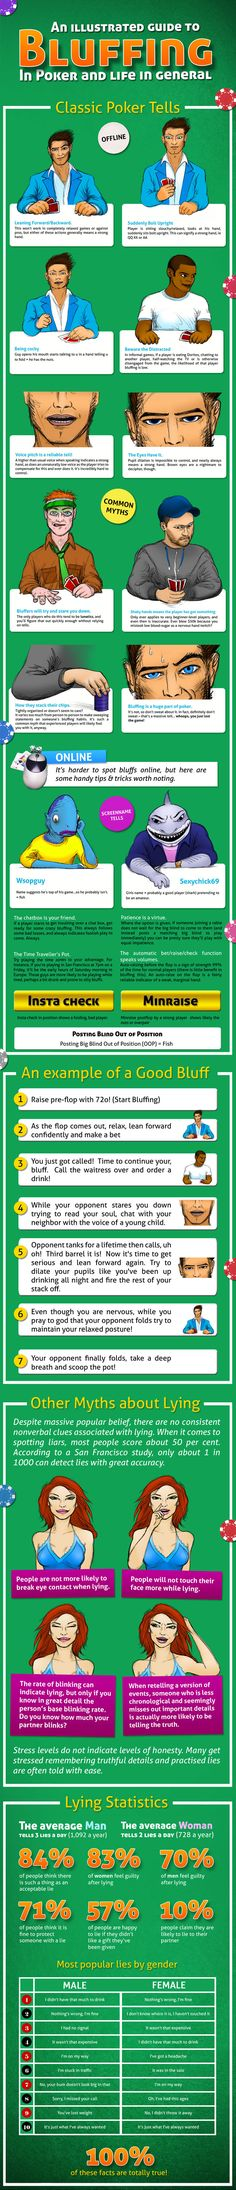 The guide for Poker Bluffing